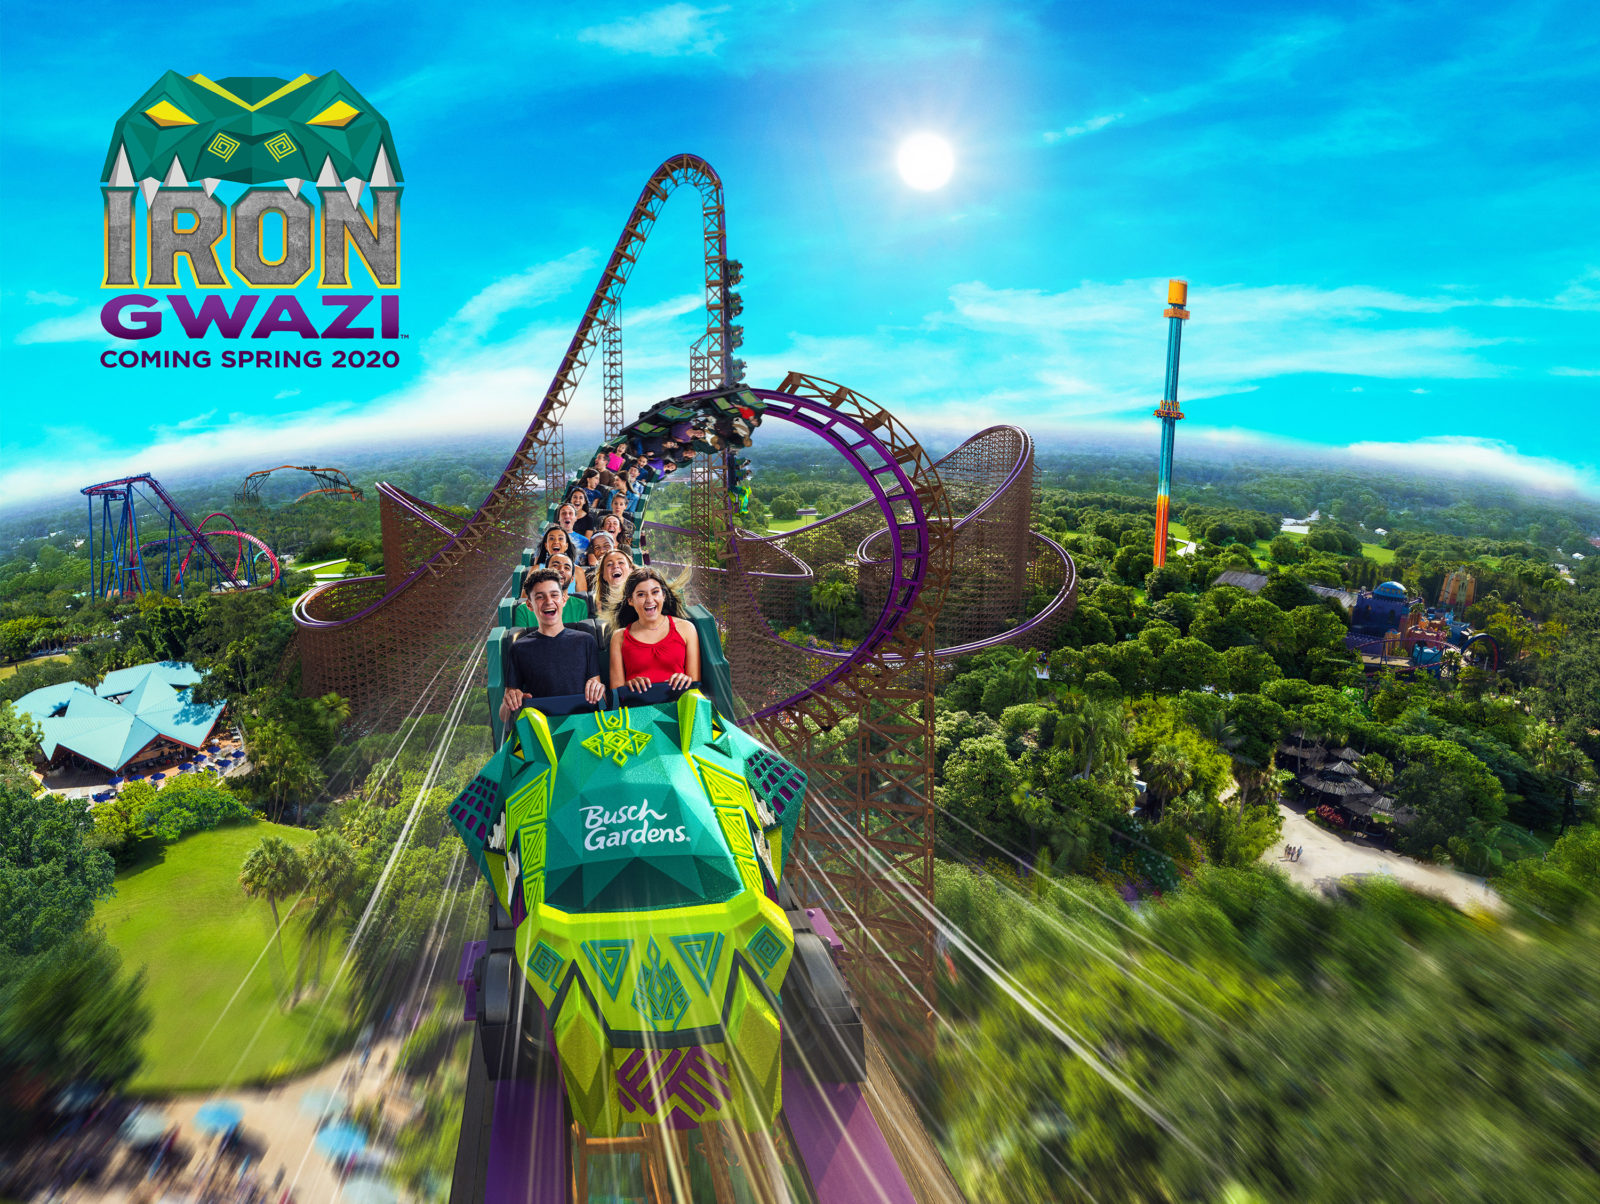 New in 2020 SeaWorld Orlando and Busch Gardens Tampa Bay